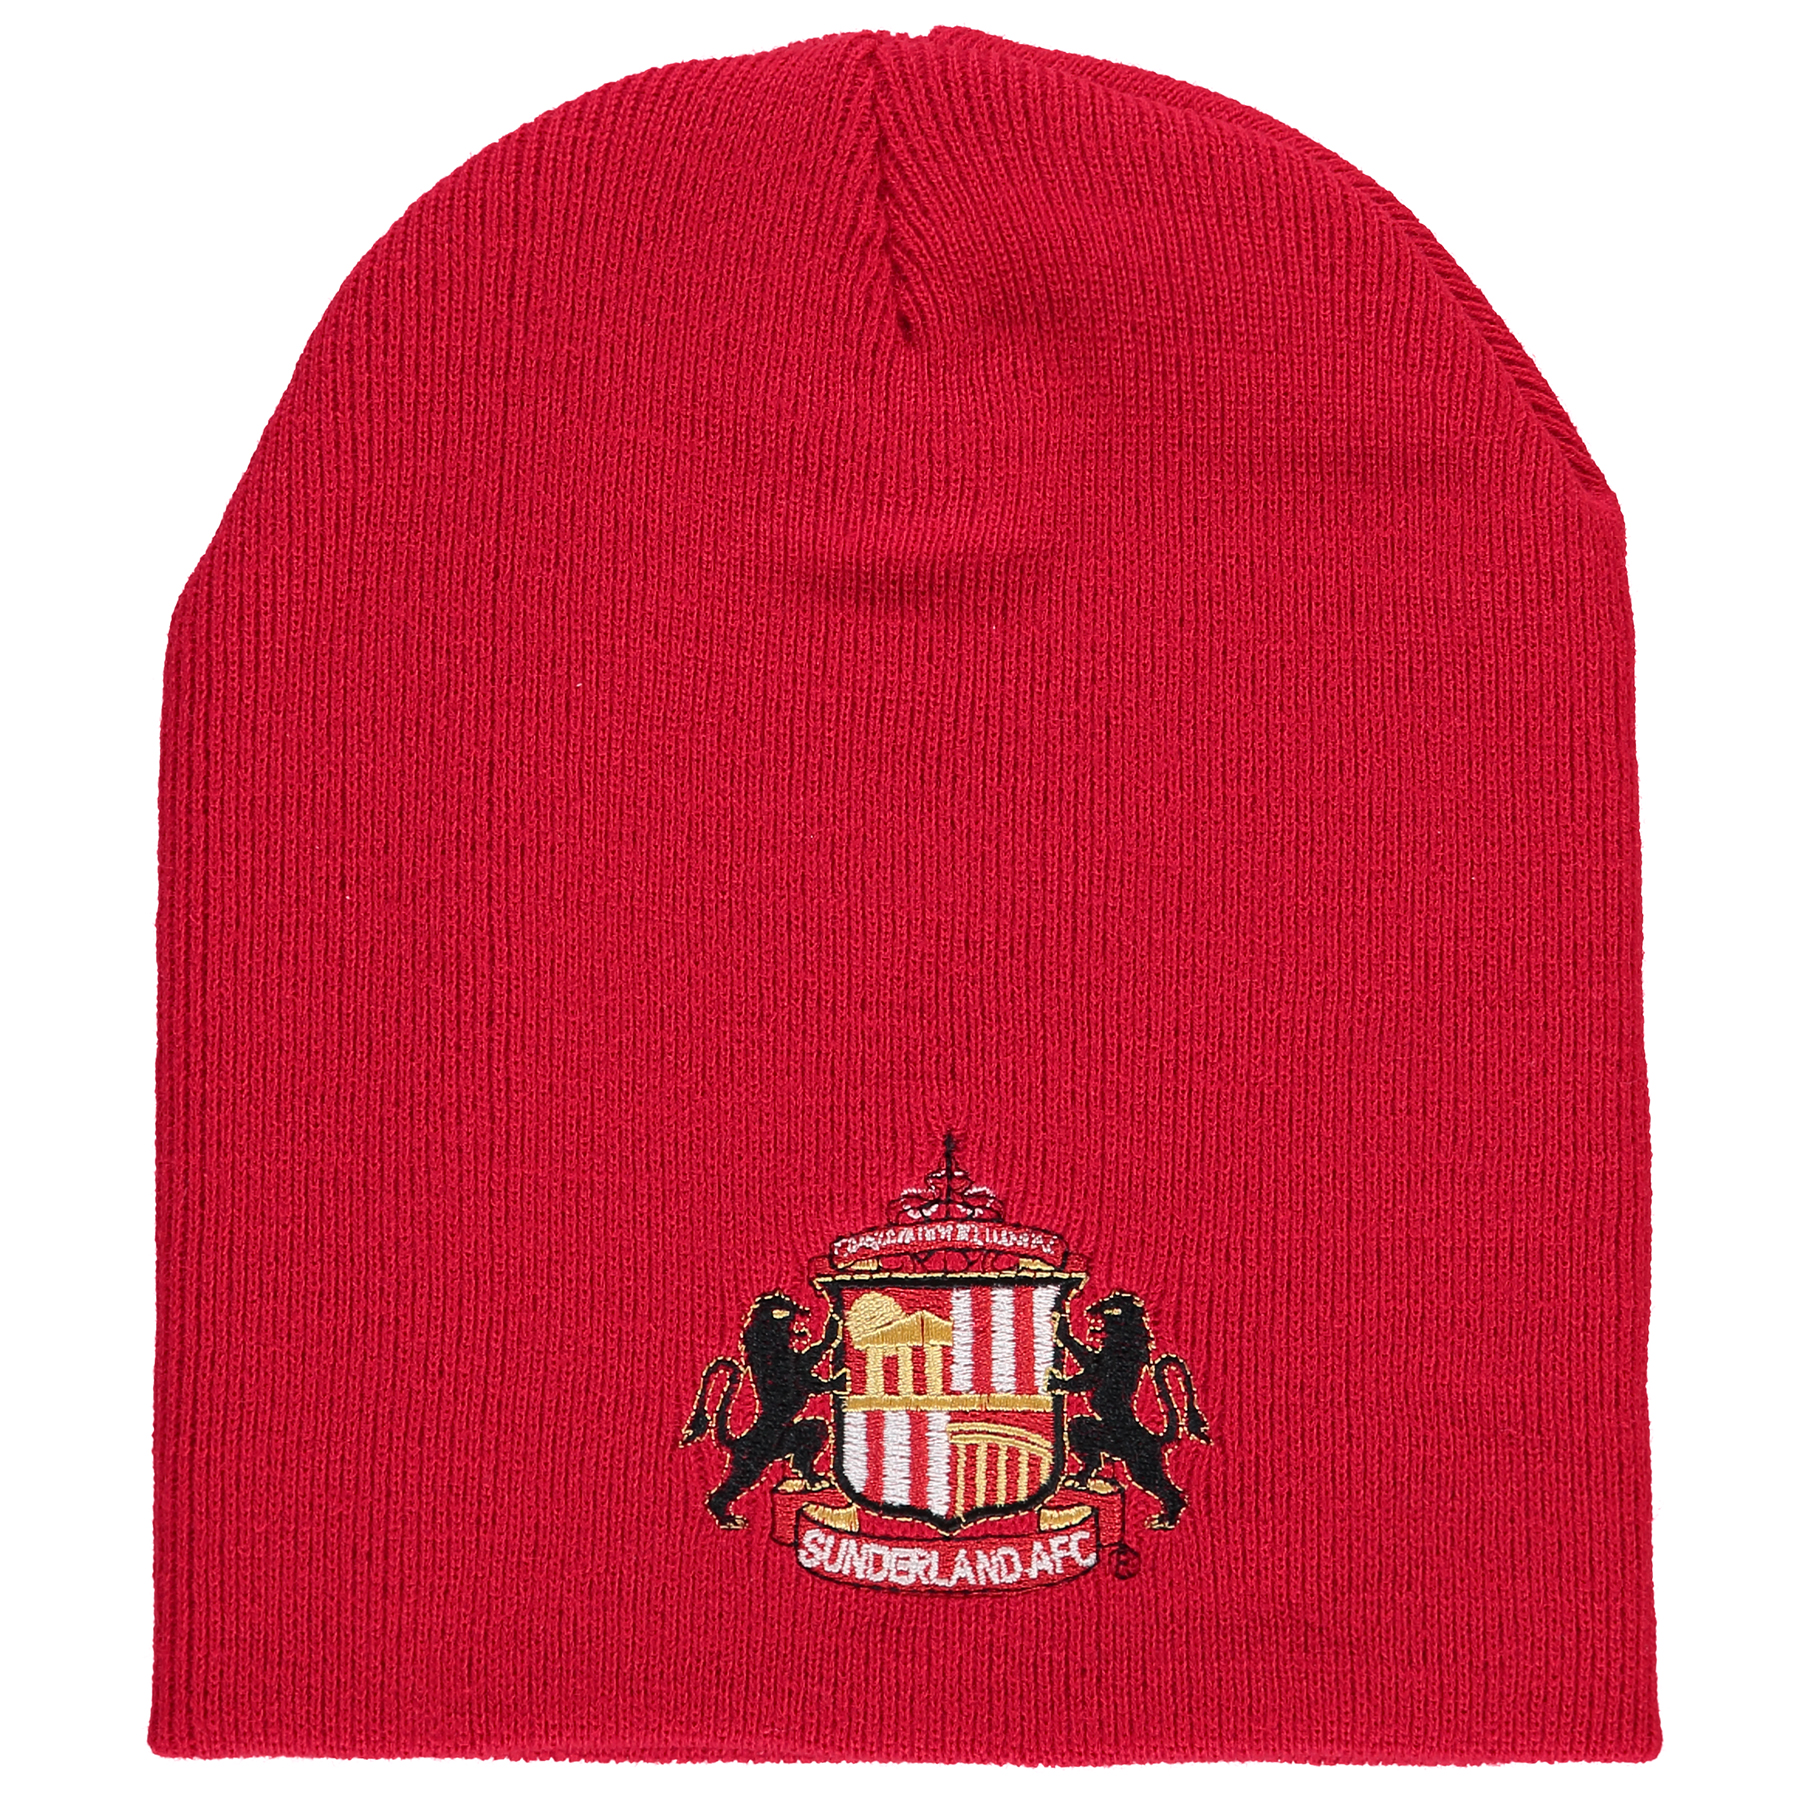 Sunderland Beanie Hat - Red - Adult